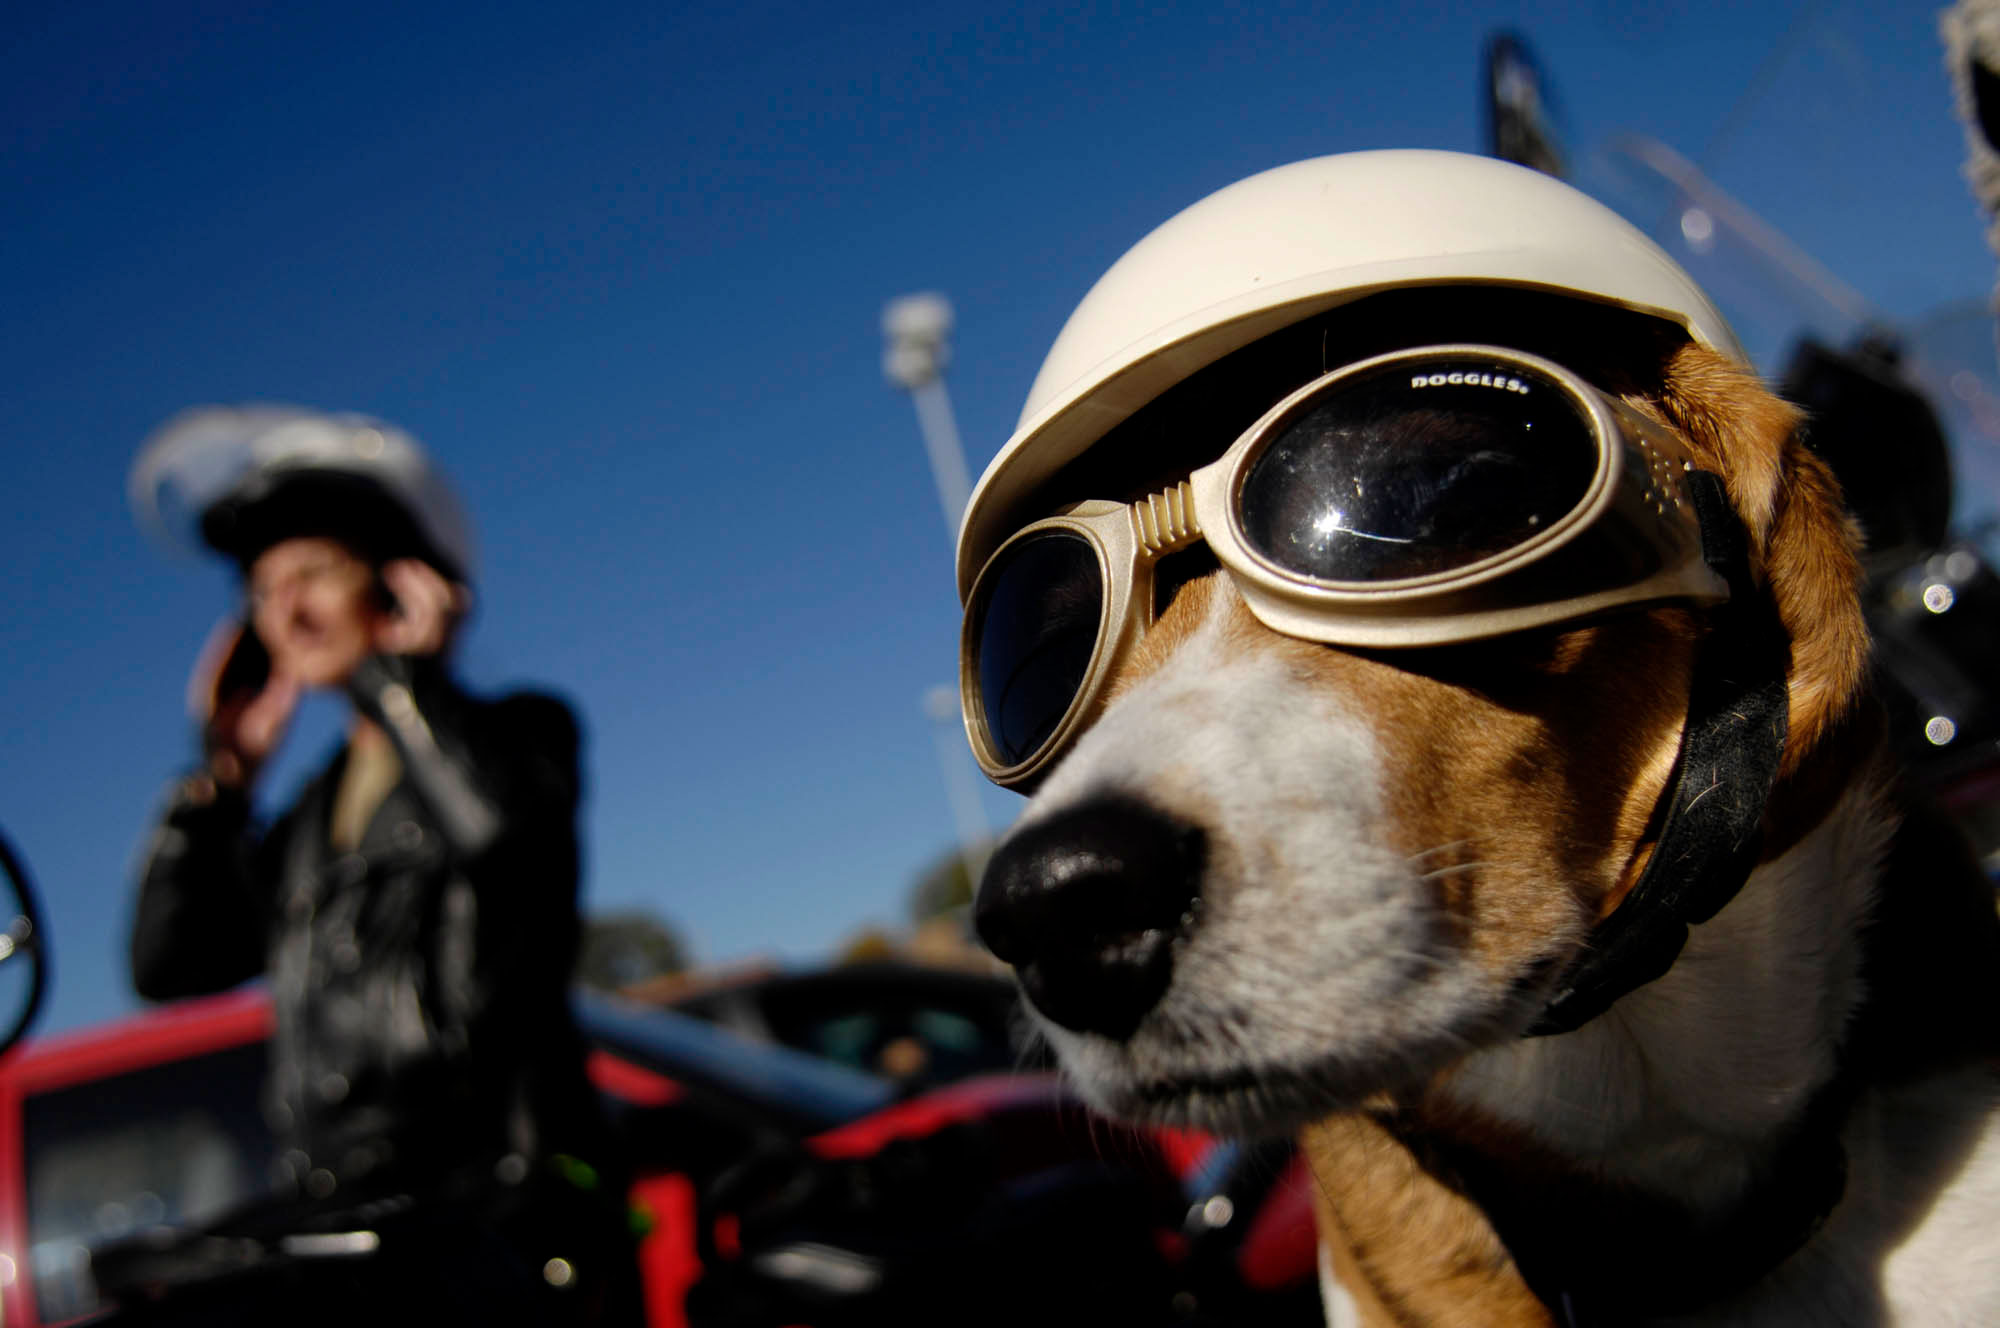 Sidecar companion, Amy, has doggles and a helmet to keep her safe on the ride